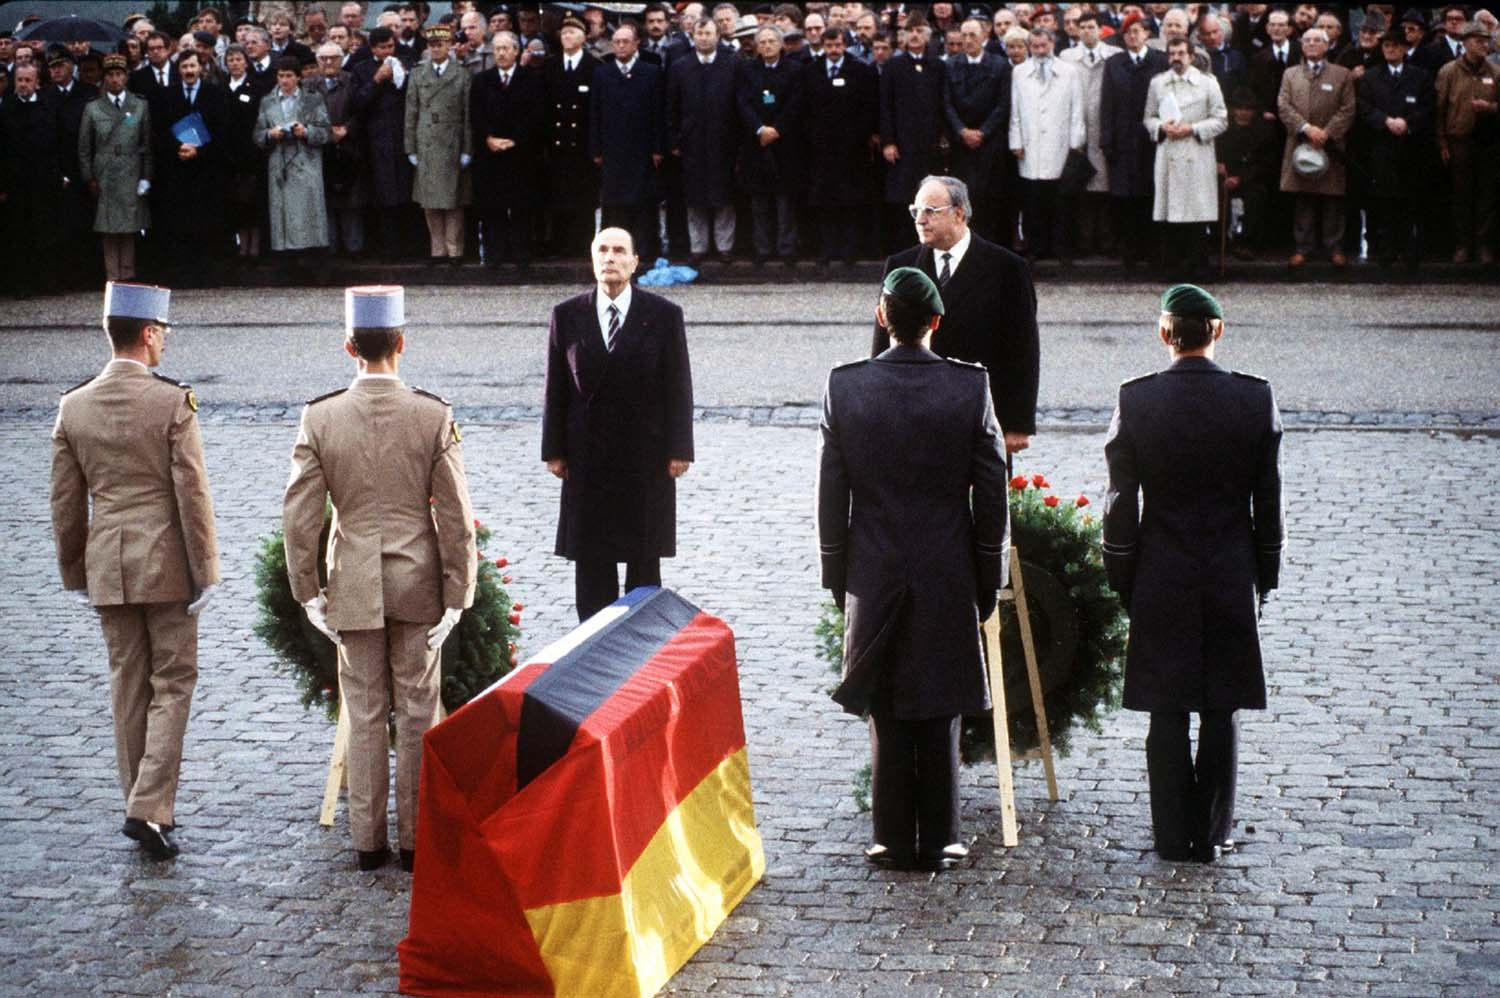 Helmut Kohl and François Mitterrand before the catafalque, covered on one side with a German flag and the other with a French flag.